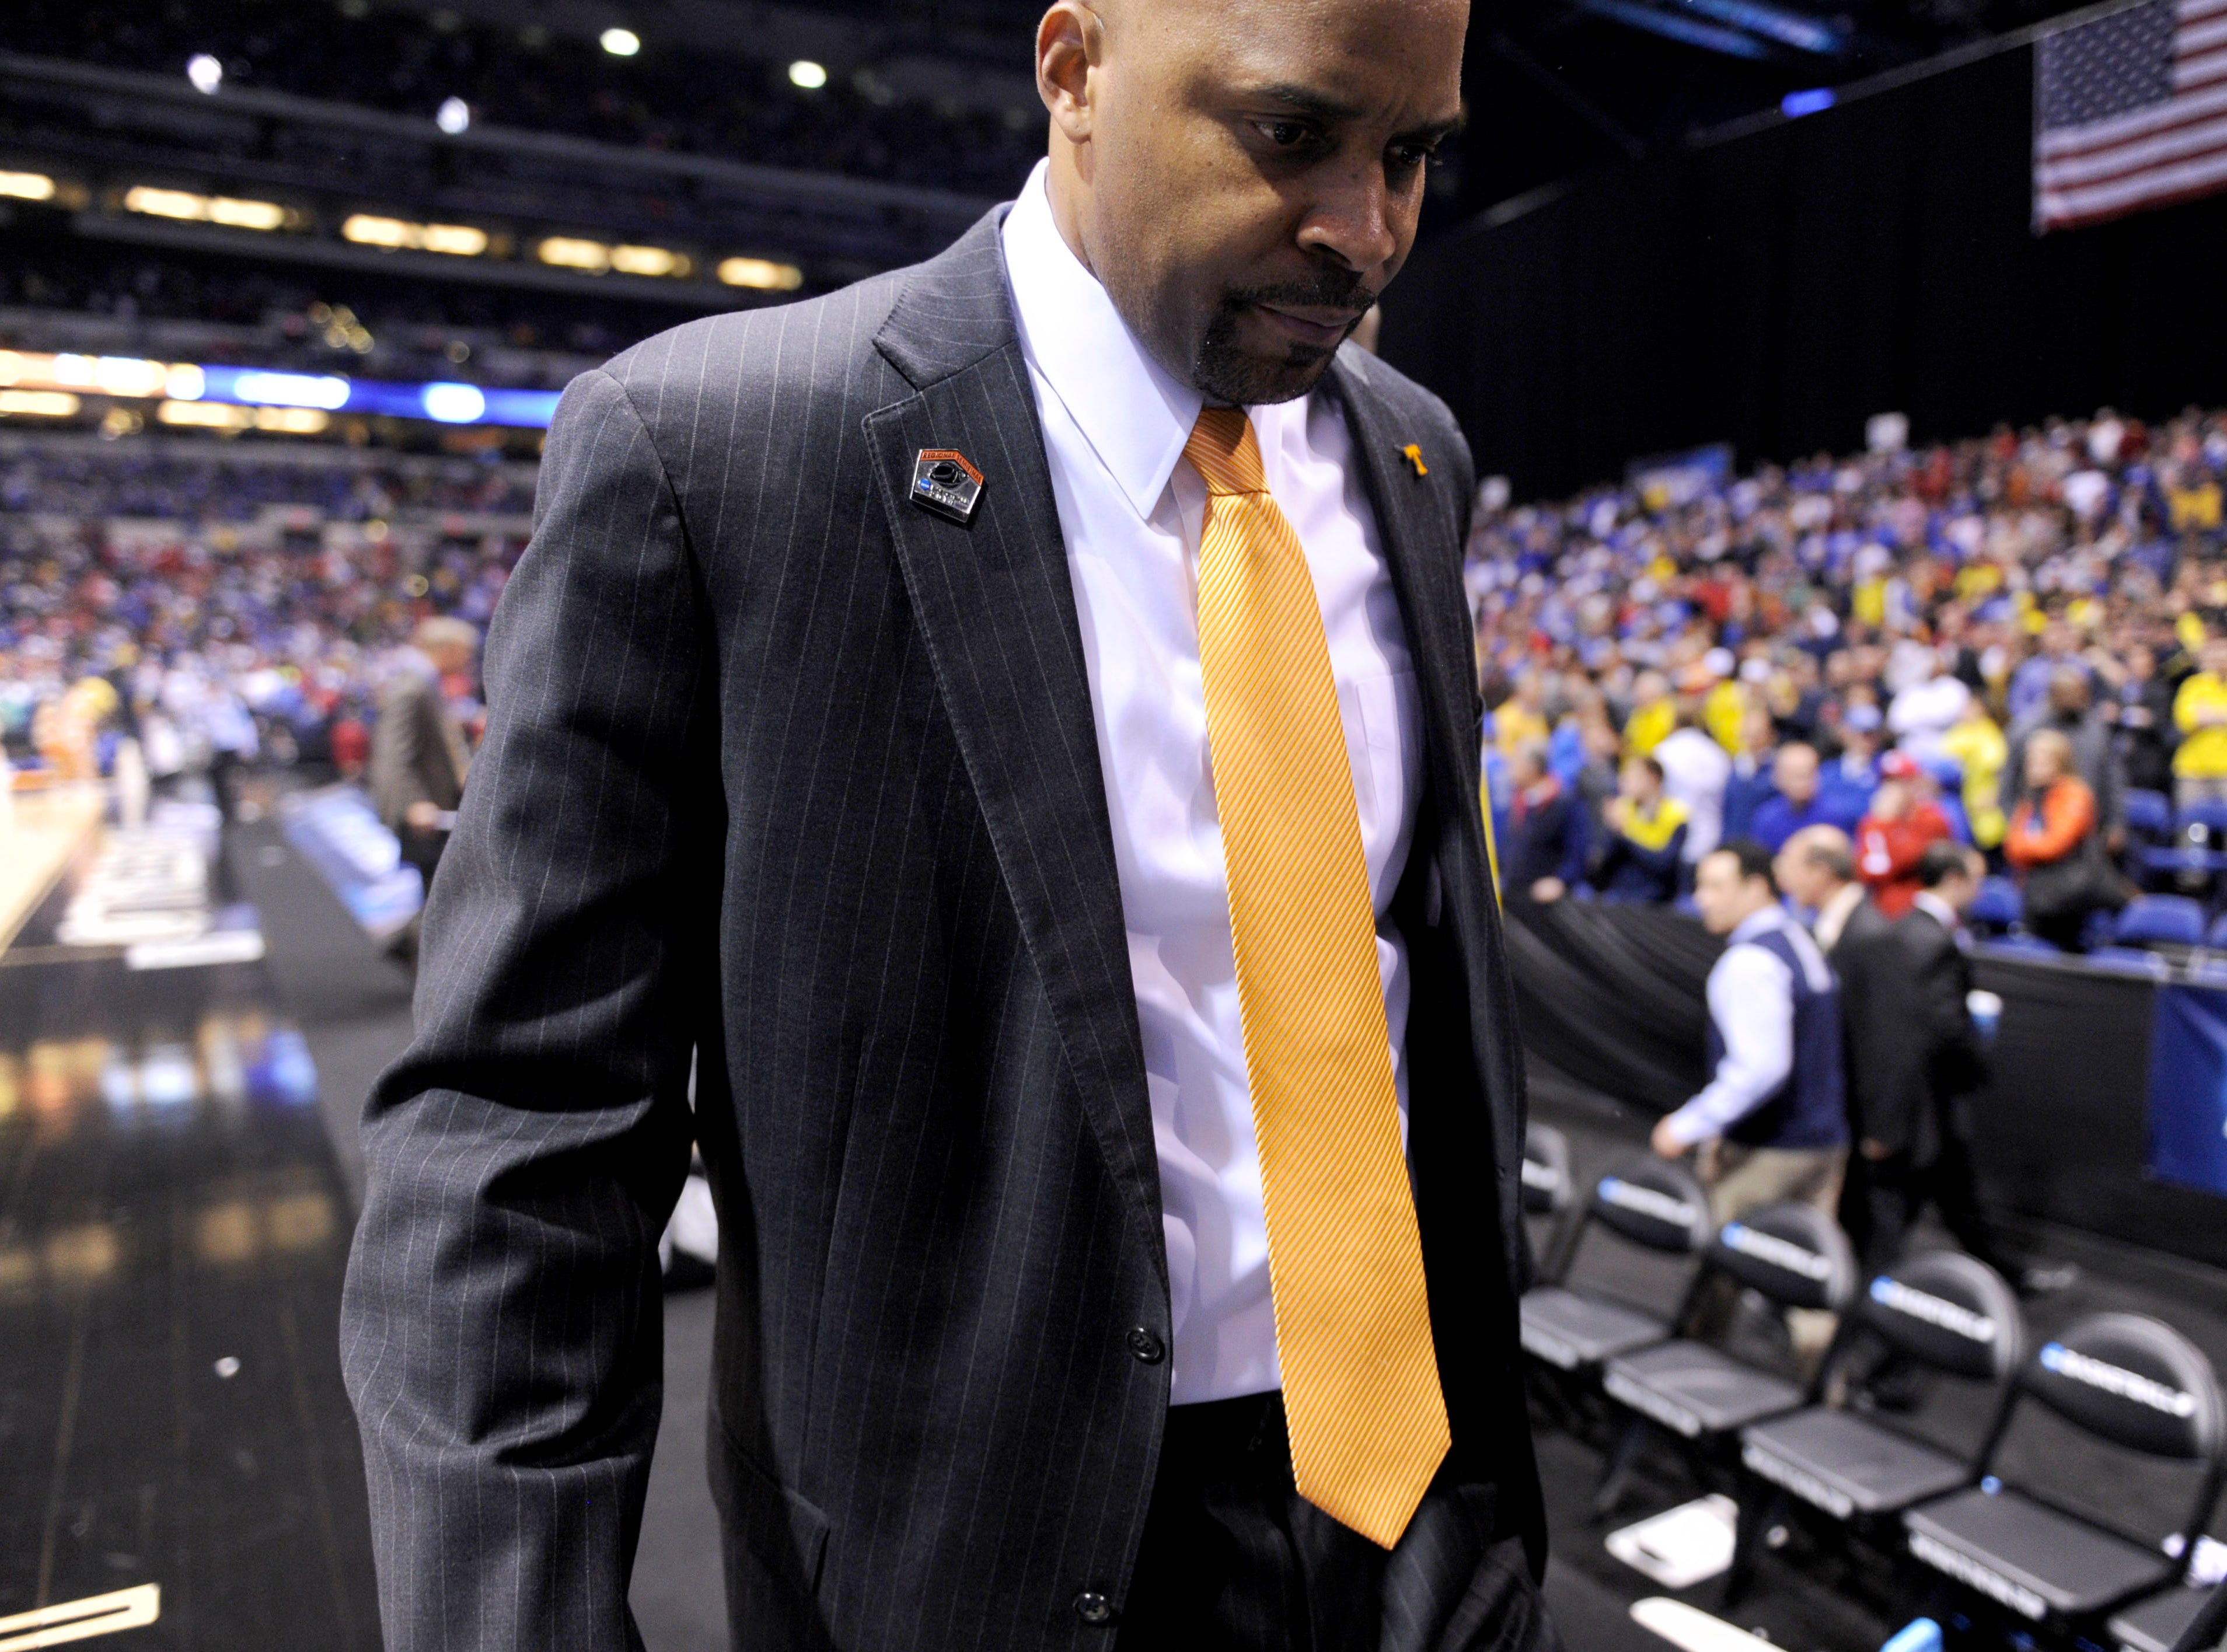 Tennessee head coach Cuonzo Martin leaves the court after losing to Michigan 73-71 in an NCAA Sweet 16 game at Lucas Oil Stadium in Indianapolis, Ind. on Friday, March 28, 2014.